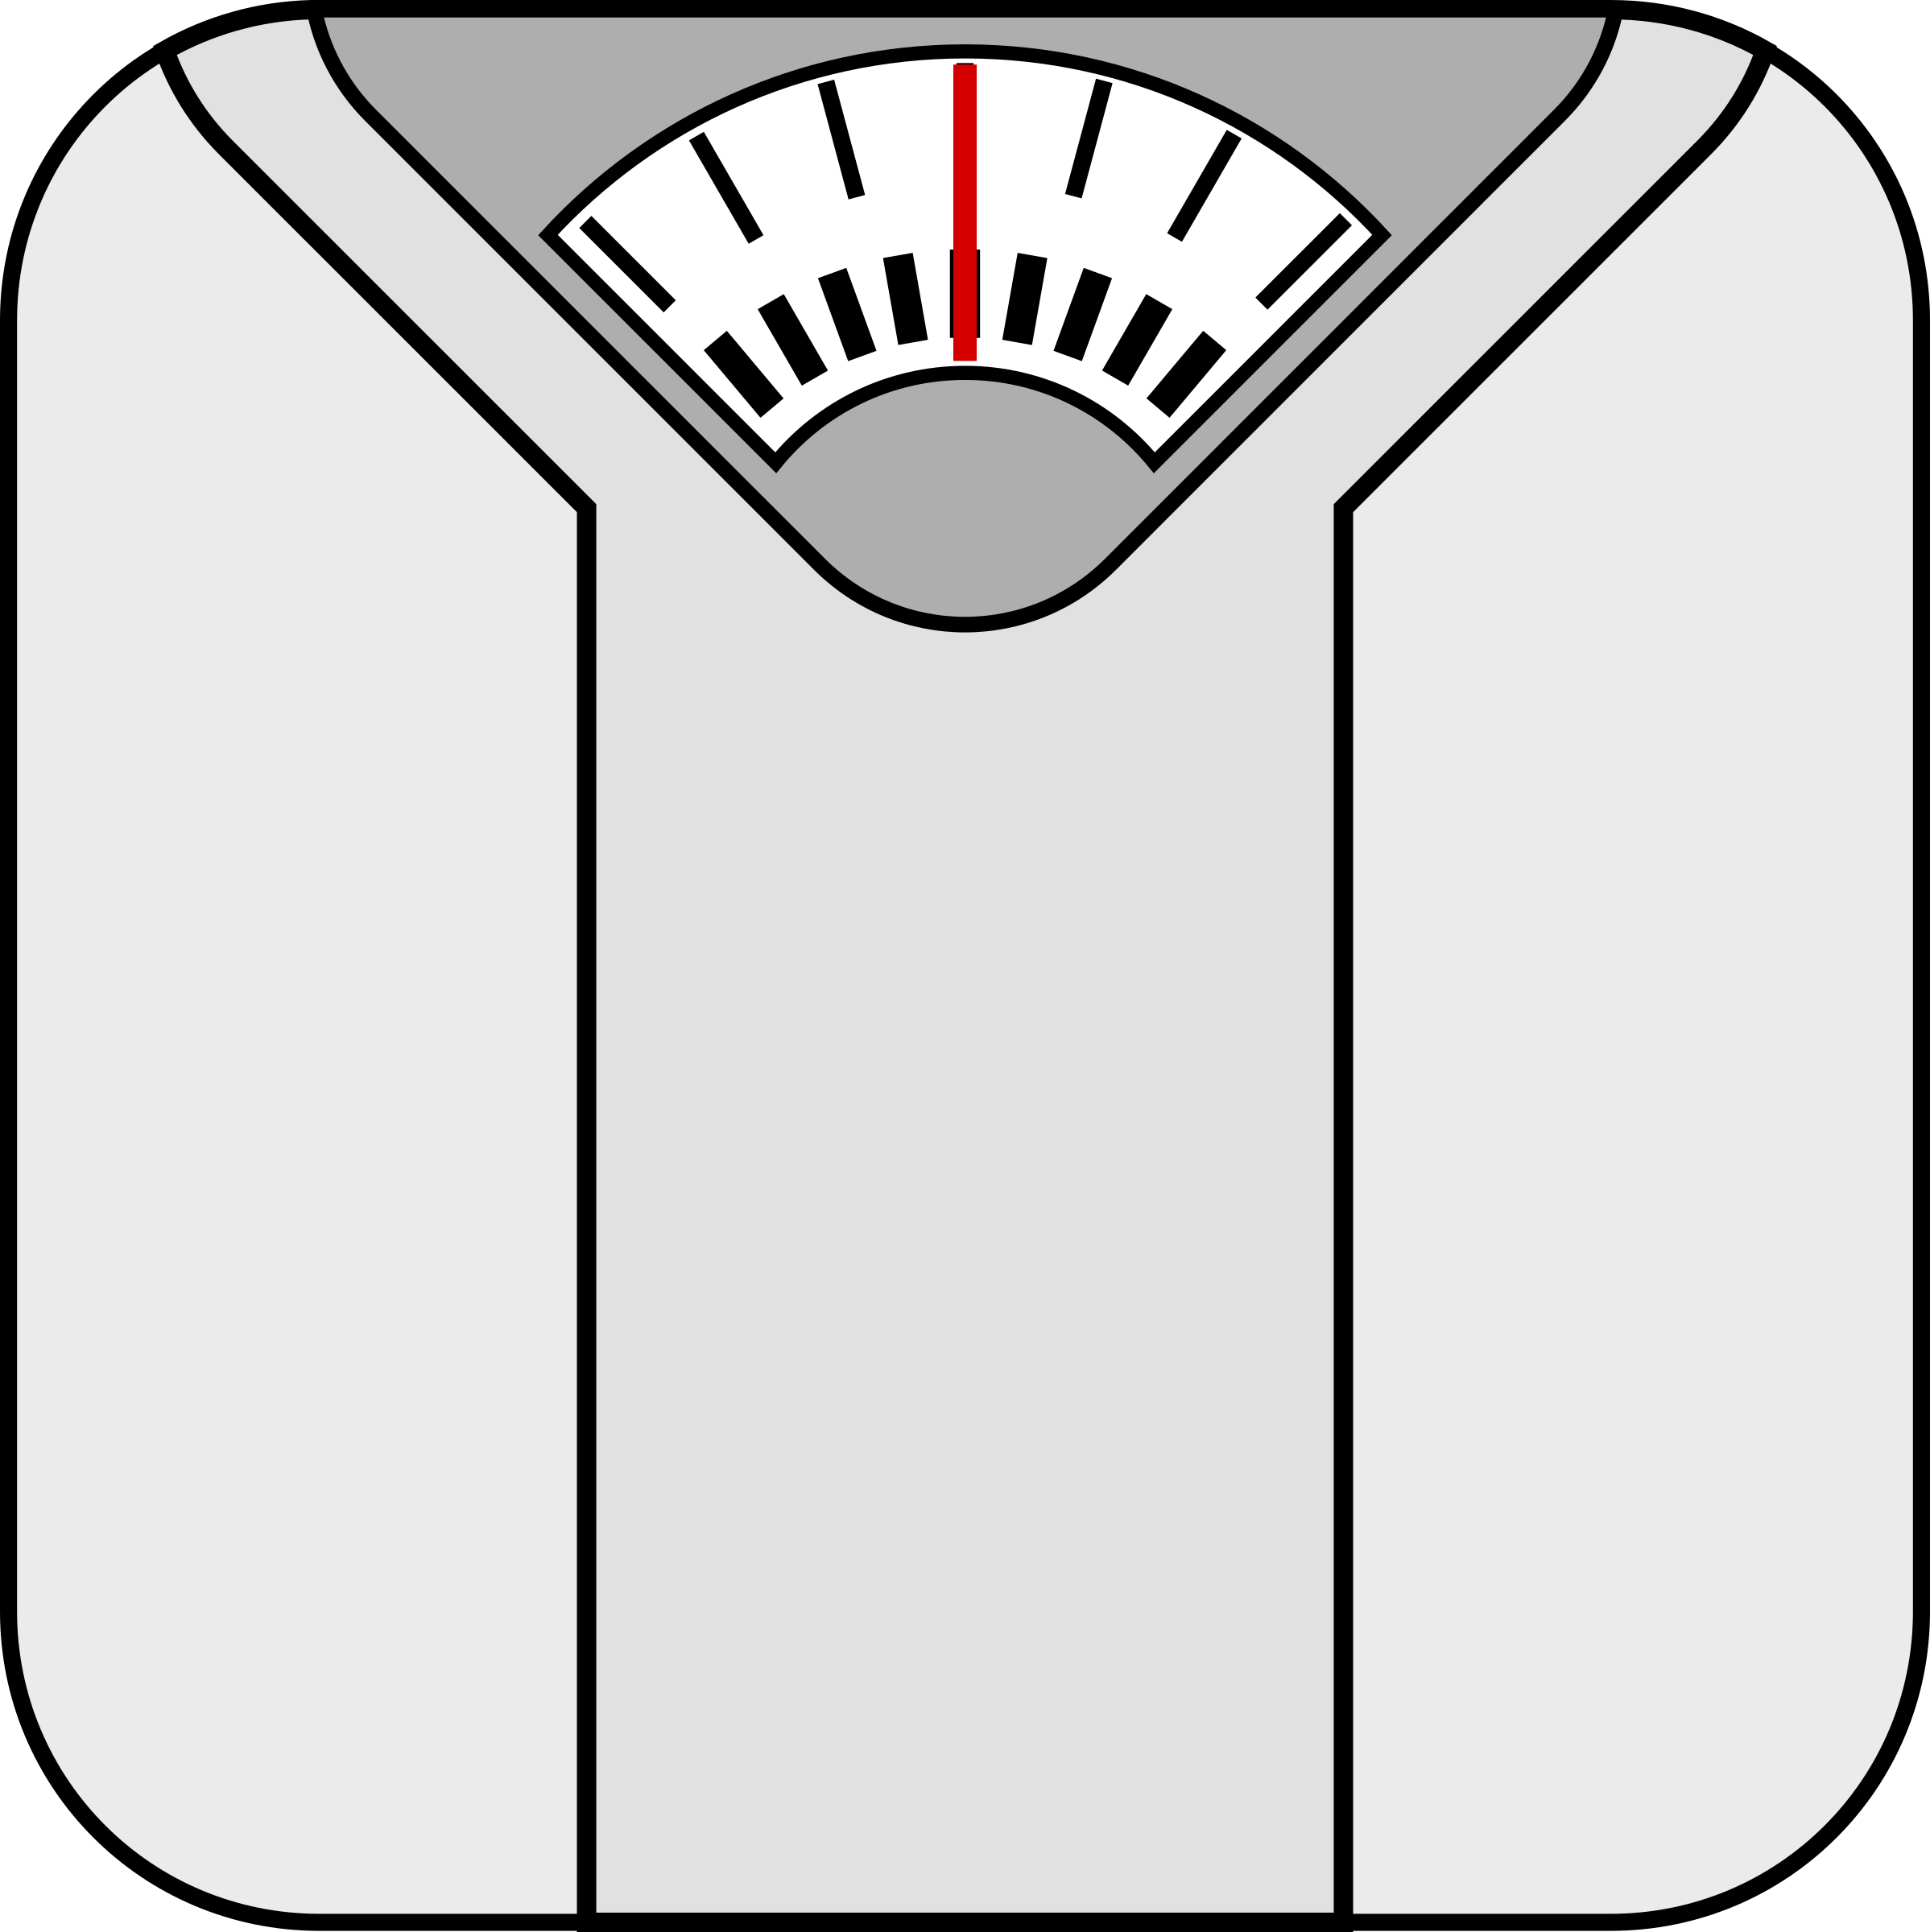 Clipart - Bathroom scale